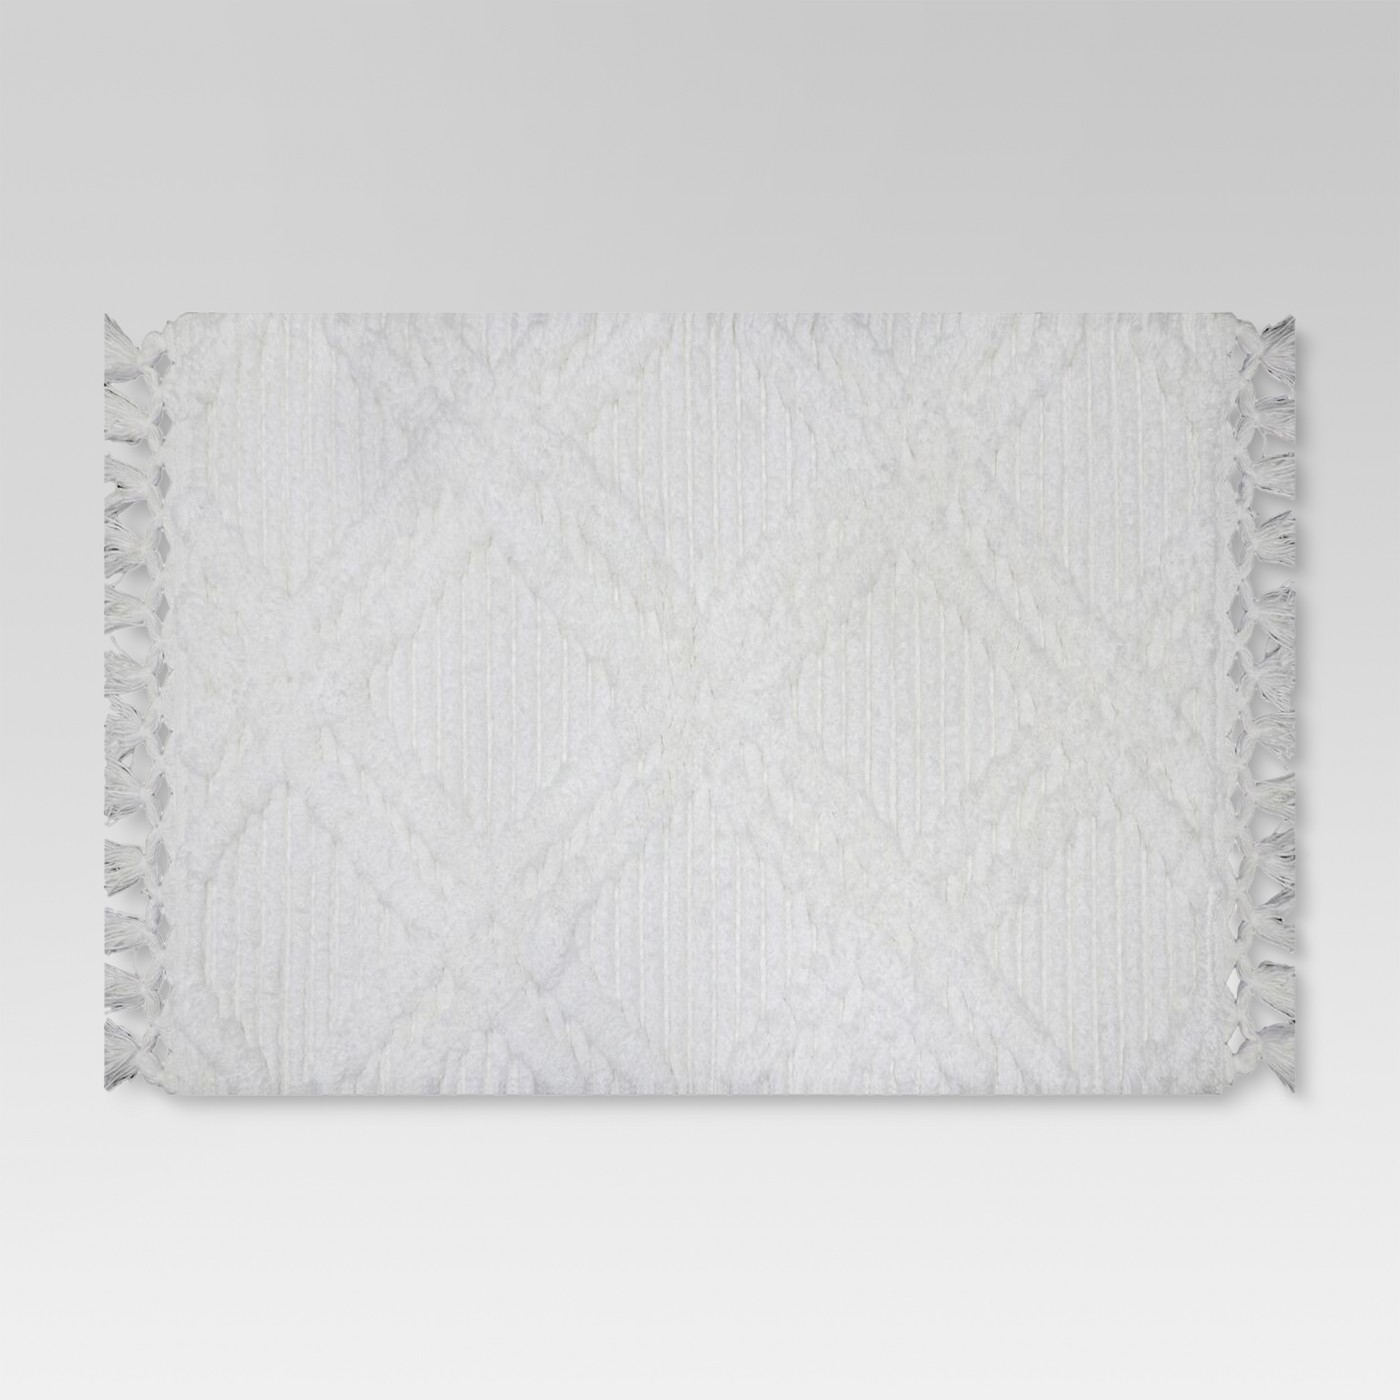 Diamond Embossed Tasseled woven Bath Rug White - Threshold™ - image 1 of 1